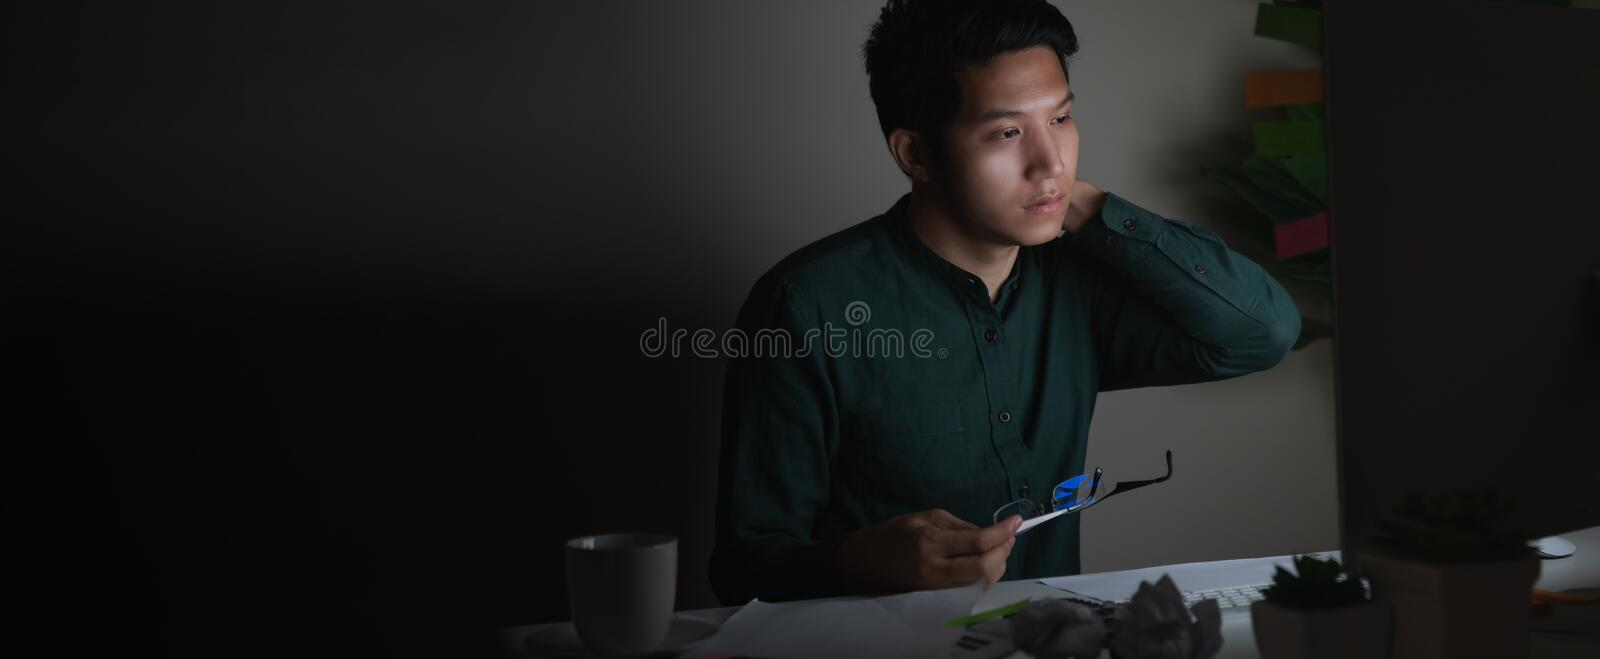 Attractive young asian man working late at night looking at laptop computer in dark home office desk feeling tired on work load or. Work hard concept royalty free stock images